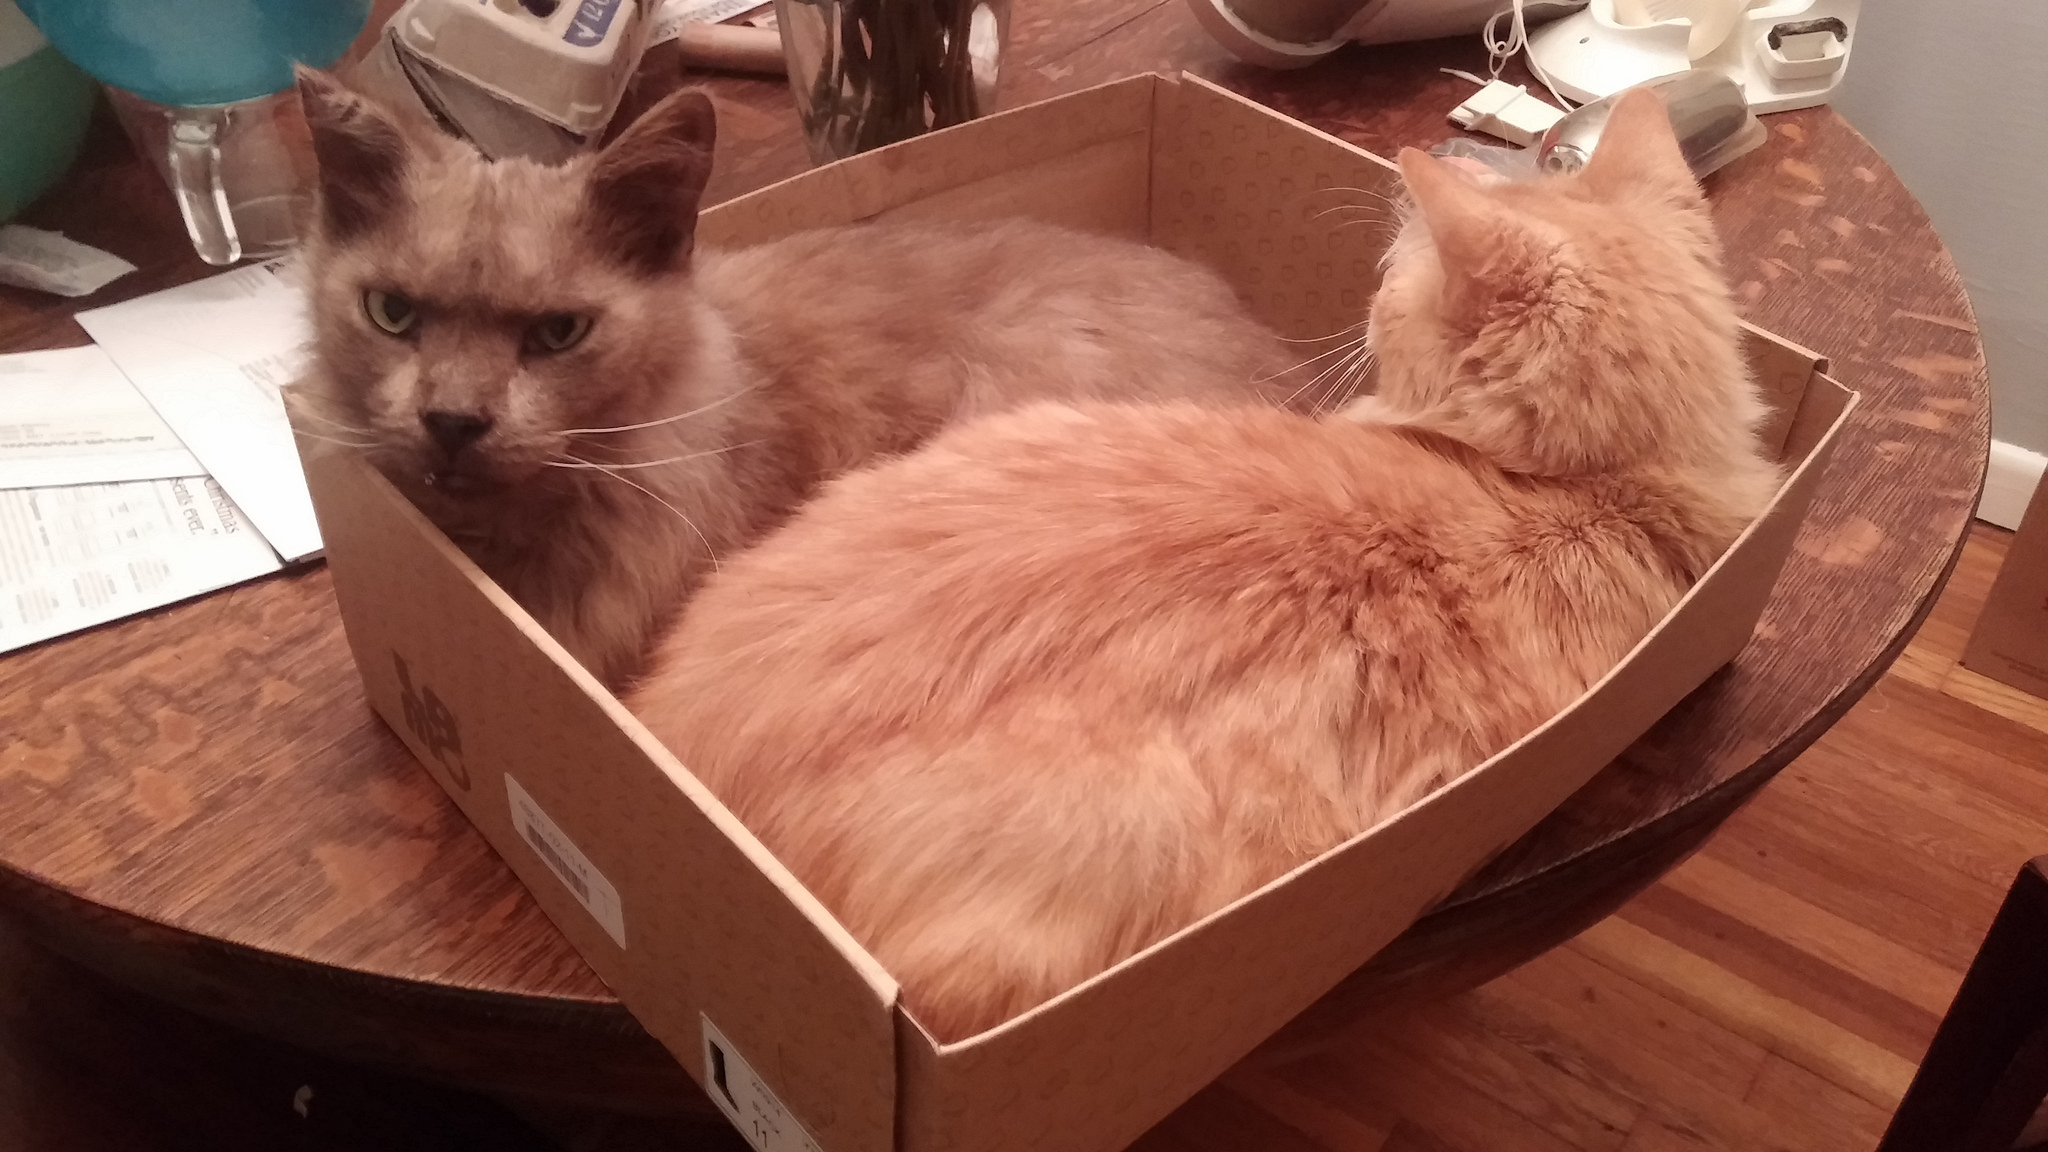 Meepers and Henry believe that as long as you still fit in boxes, there is no need to exercise.